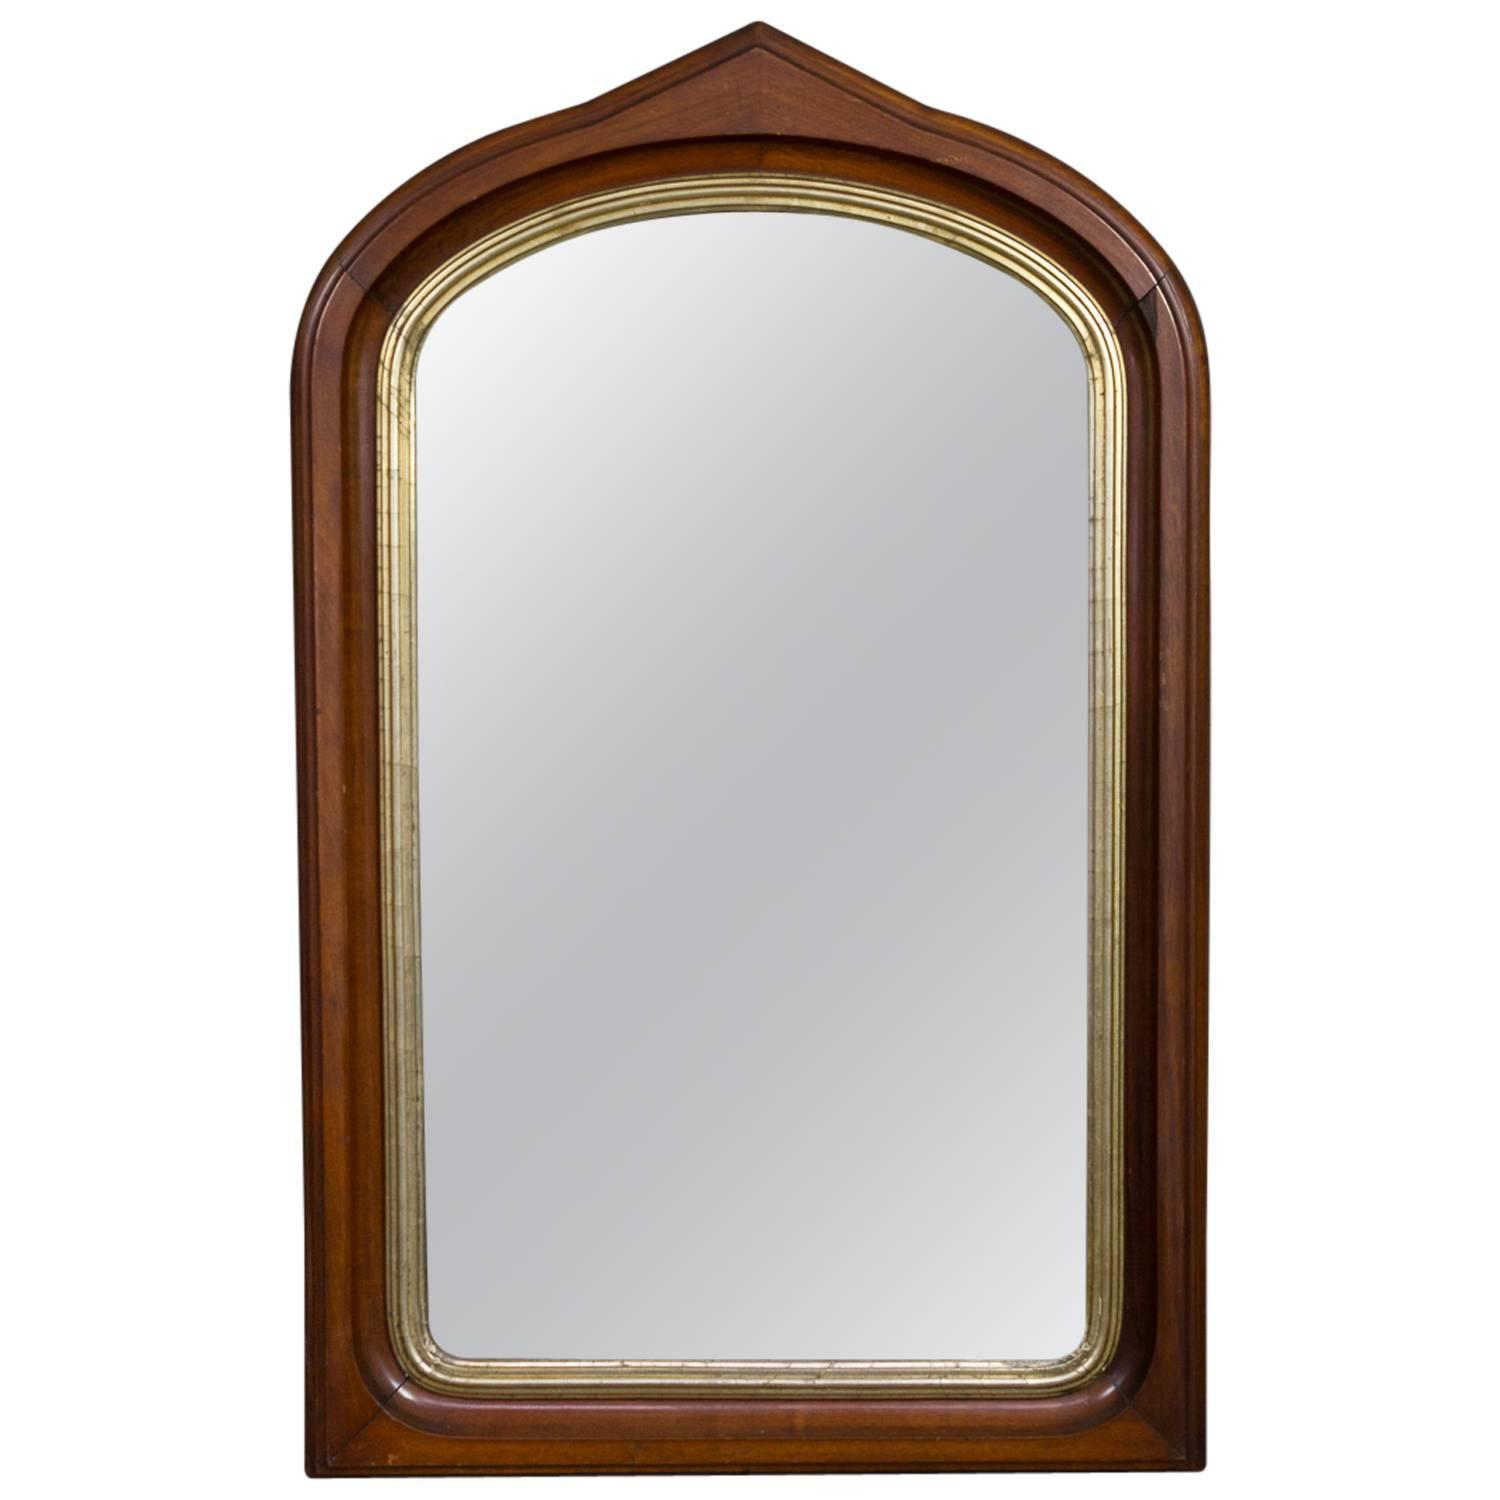 Arched gilt mirror at 1stdibs - Arched Gilt Mirror At 1stdibs 7